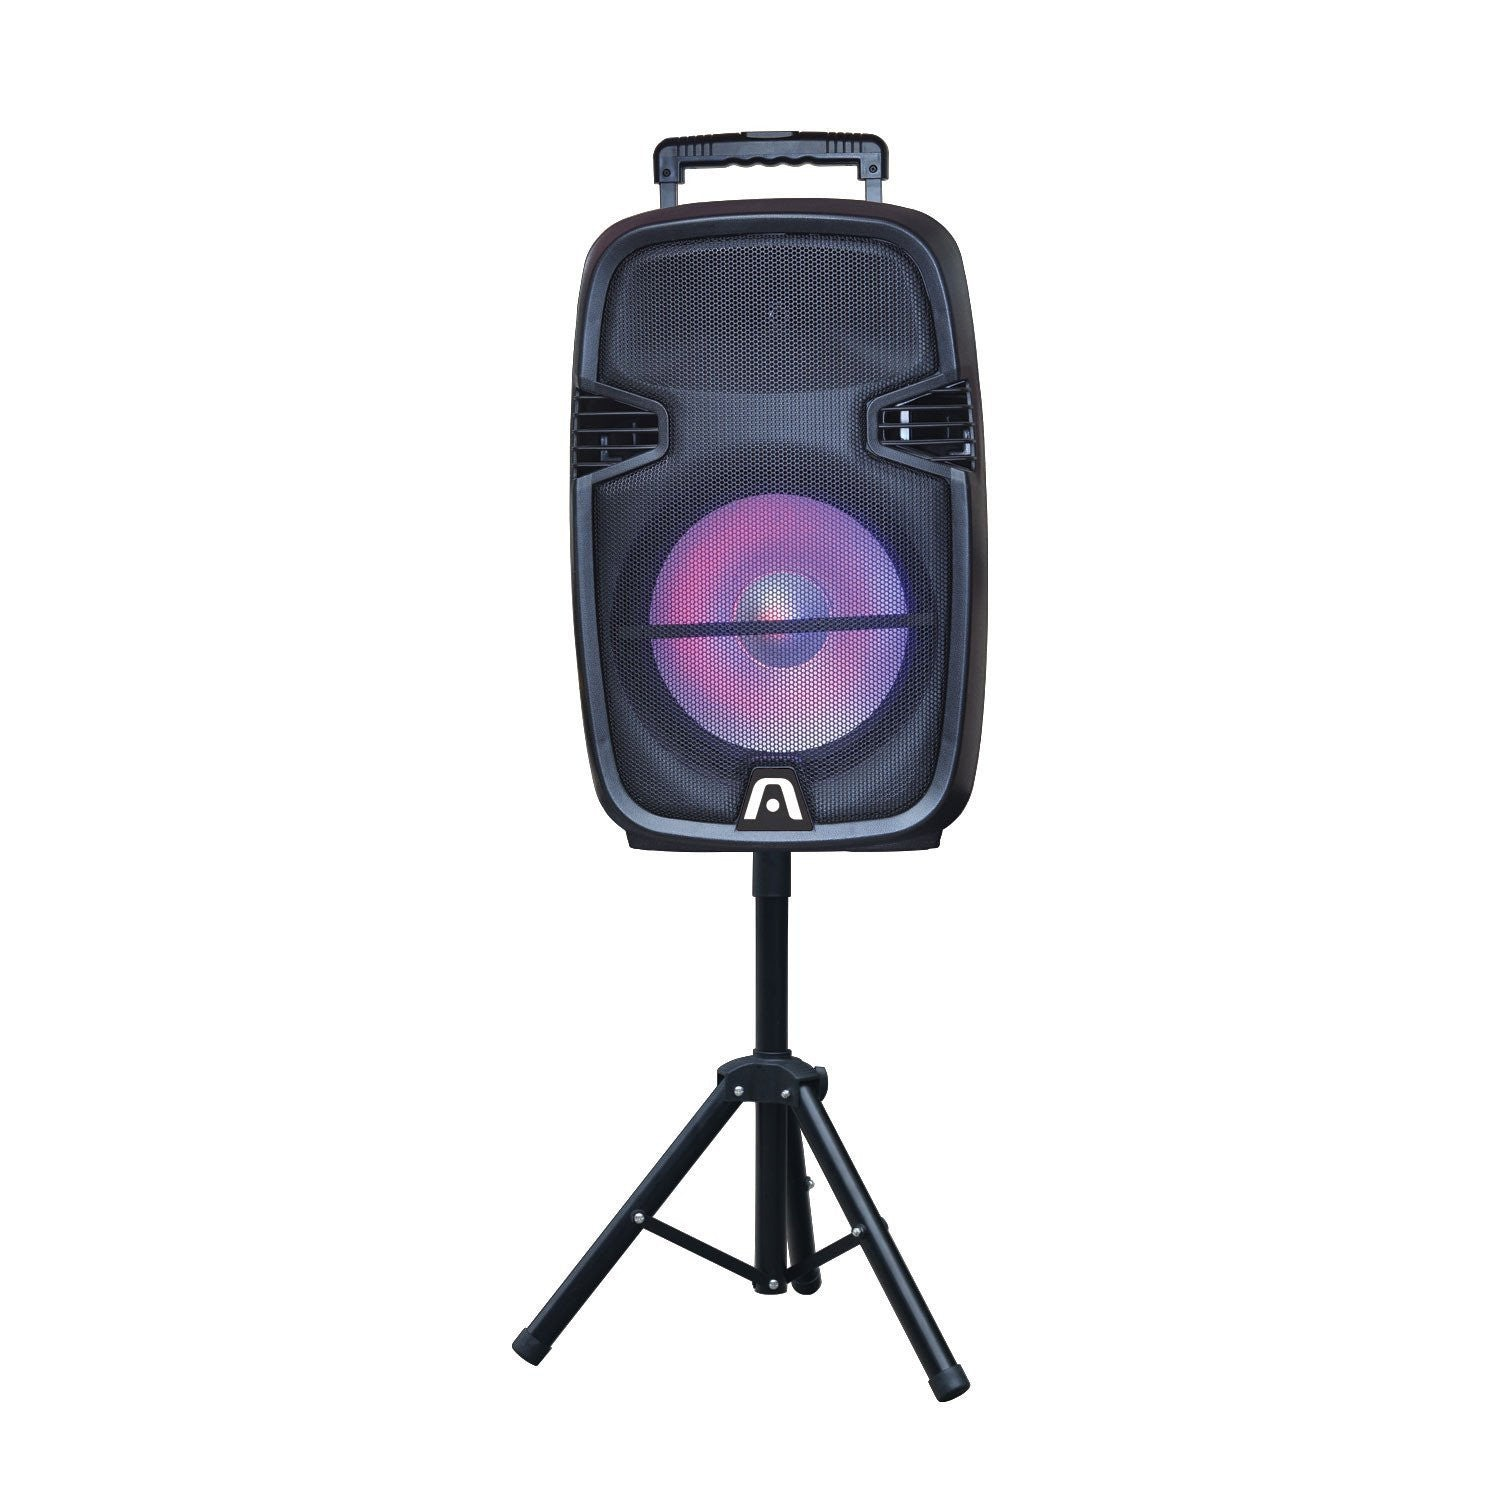 SoundBash 95 BT Trolley Speaker w/LED Lights and Stand